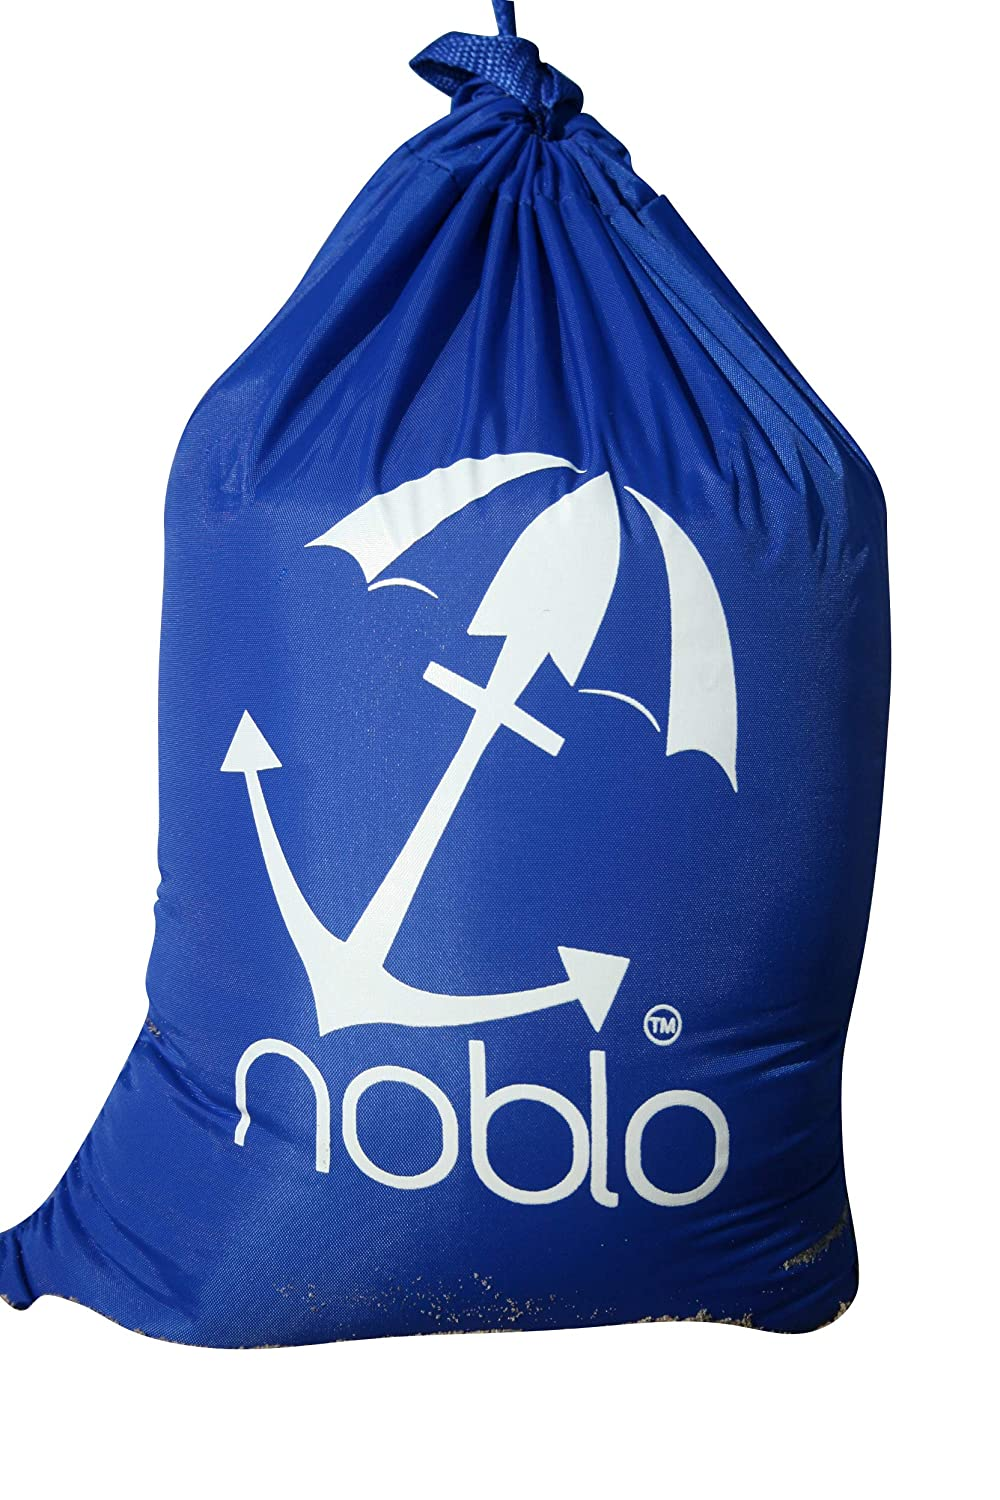 The noblo Umbrella Buddy-Simple Beach Shade Umbrella Anchor travel product recommended by Katie Rego on Lifney.